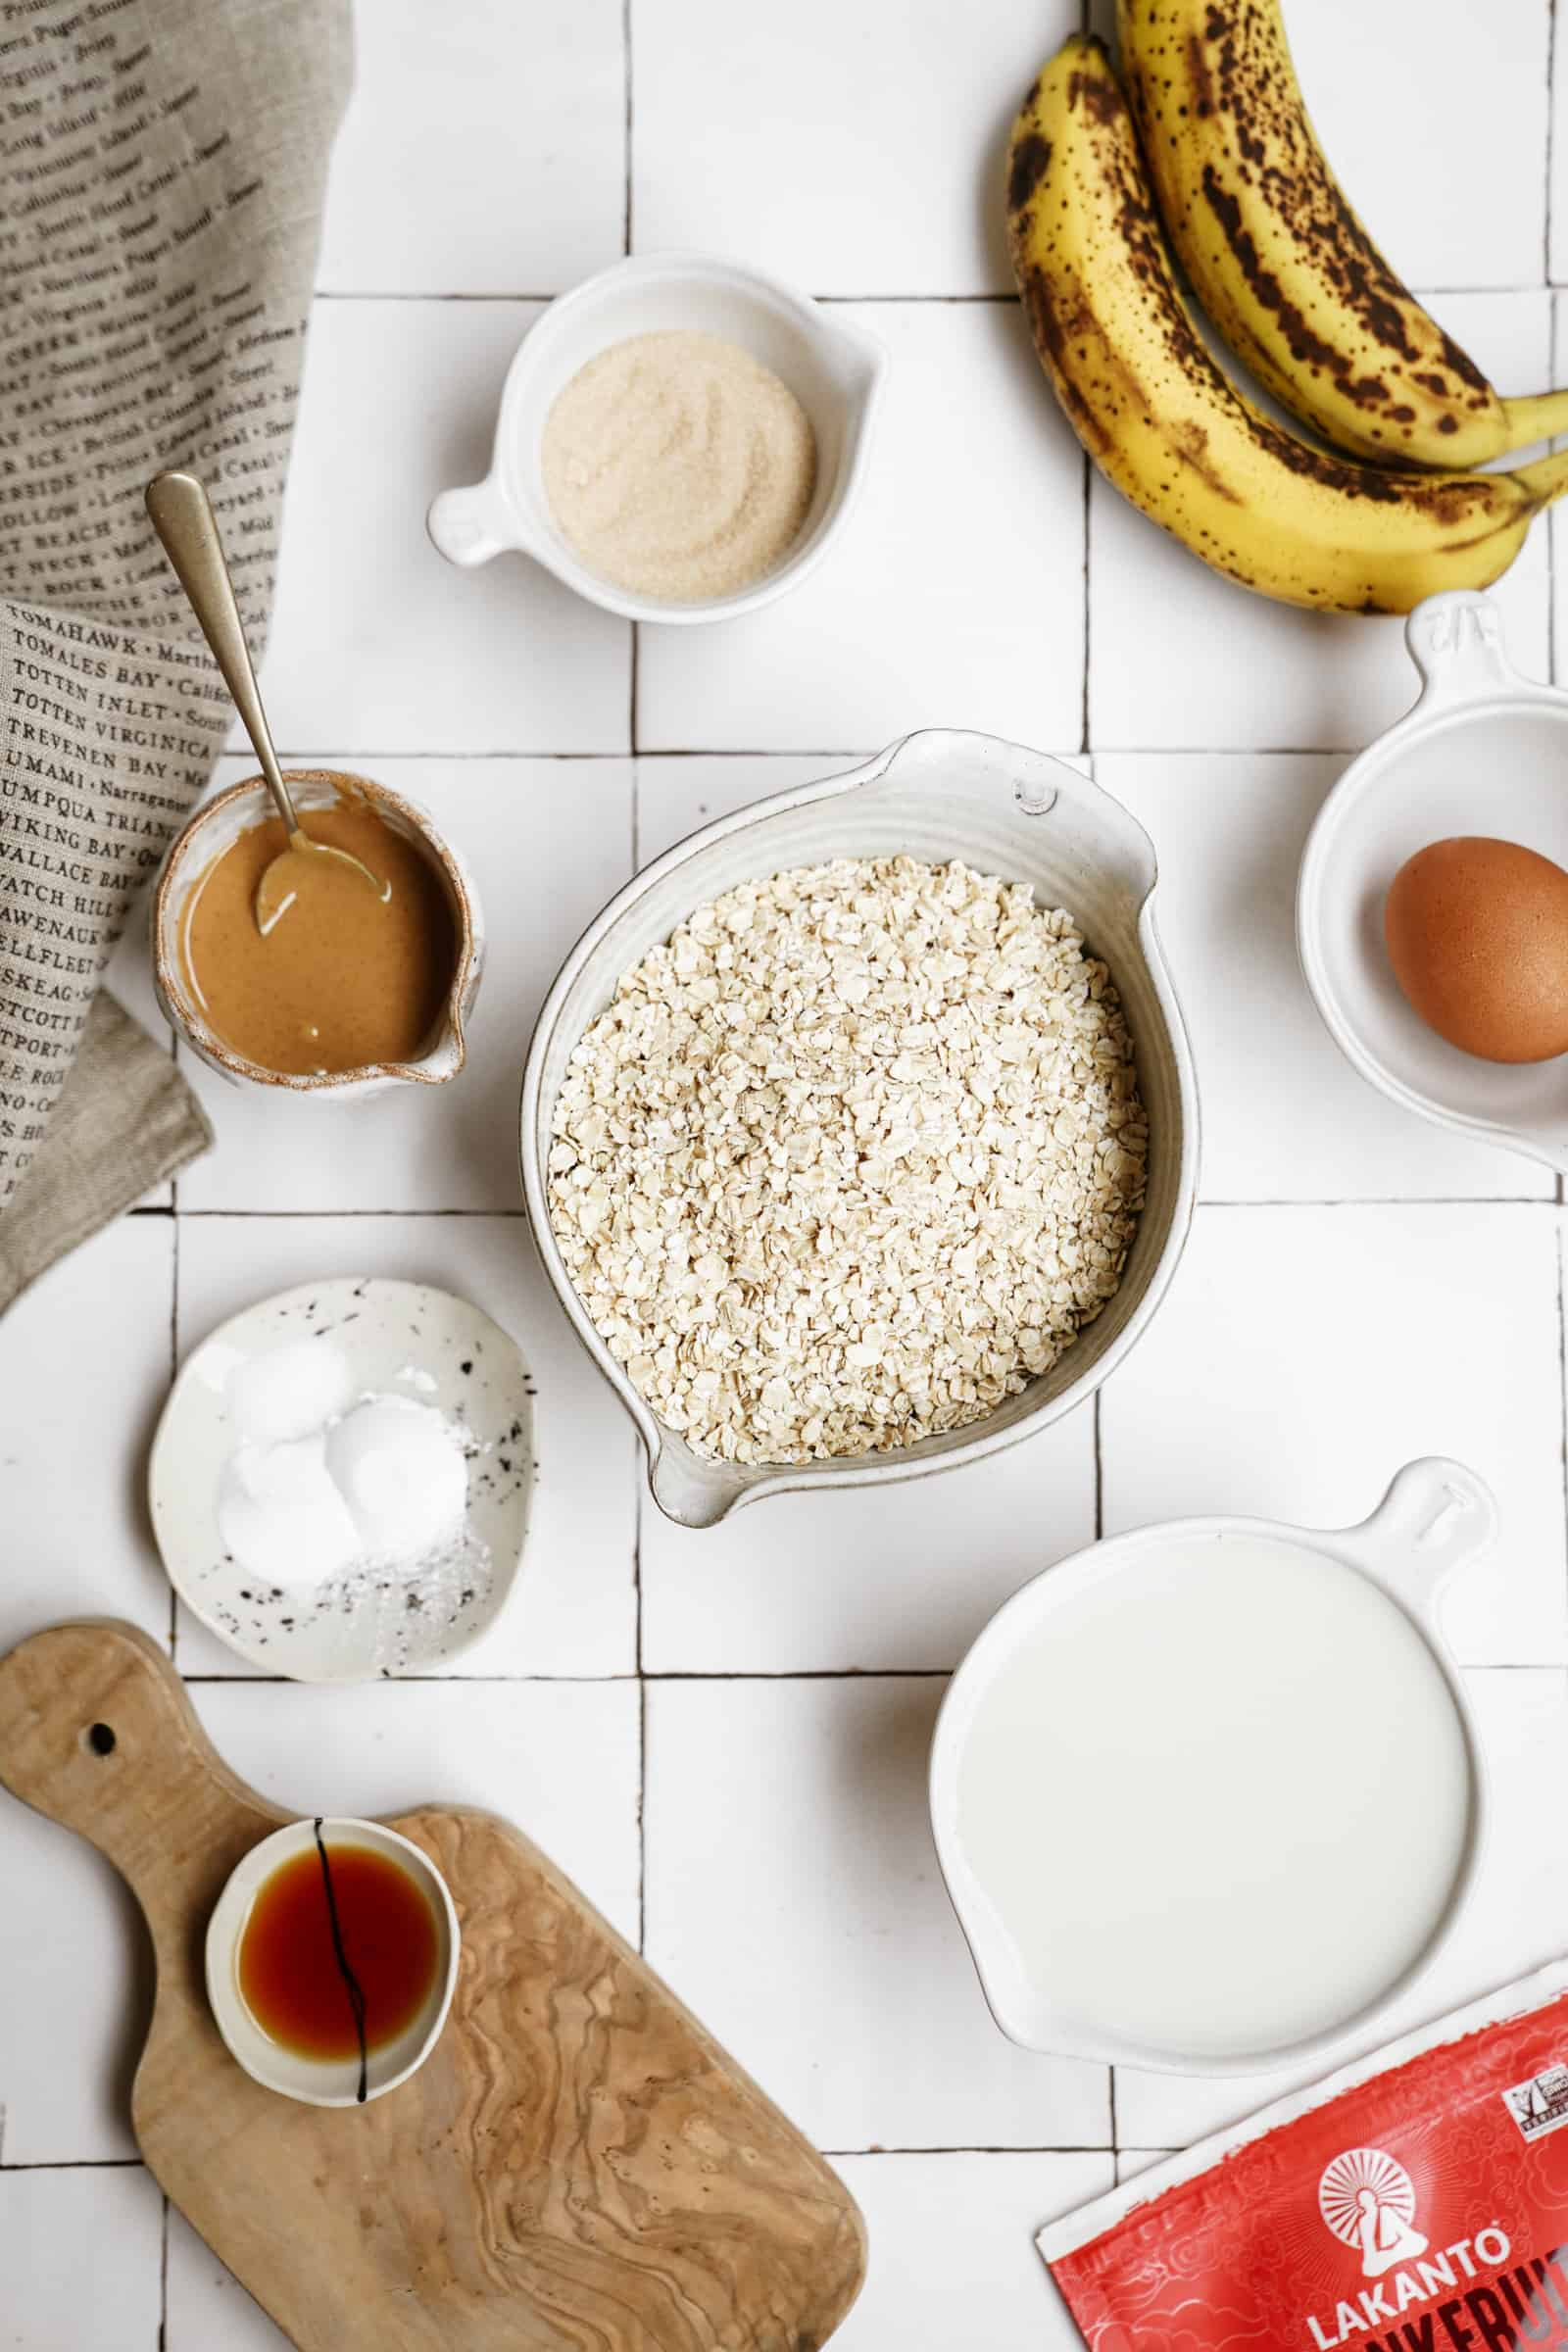 Ingredients for peanut butter banana pancakes